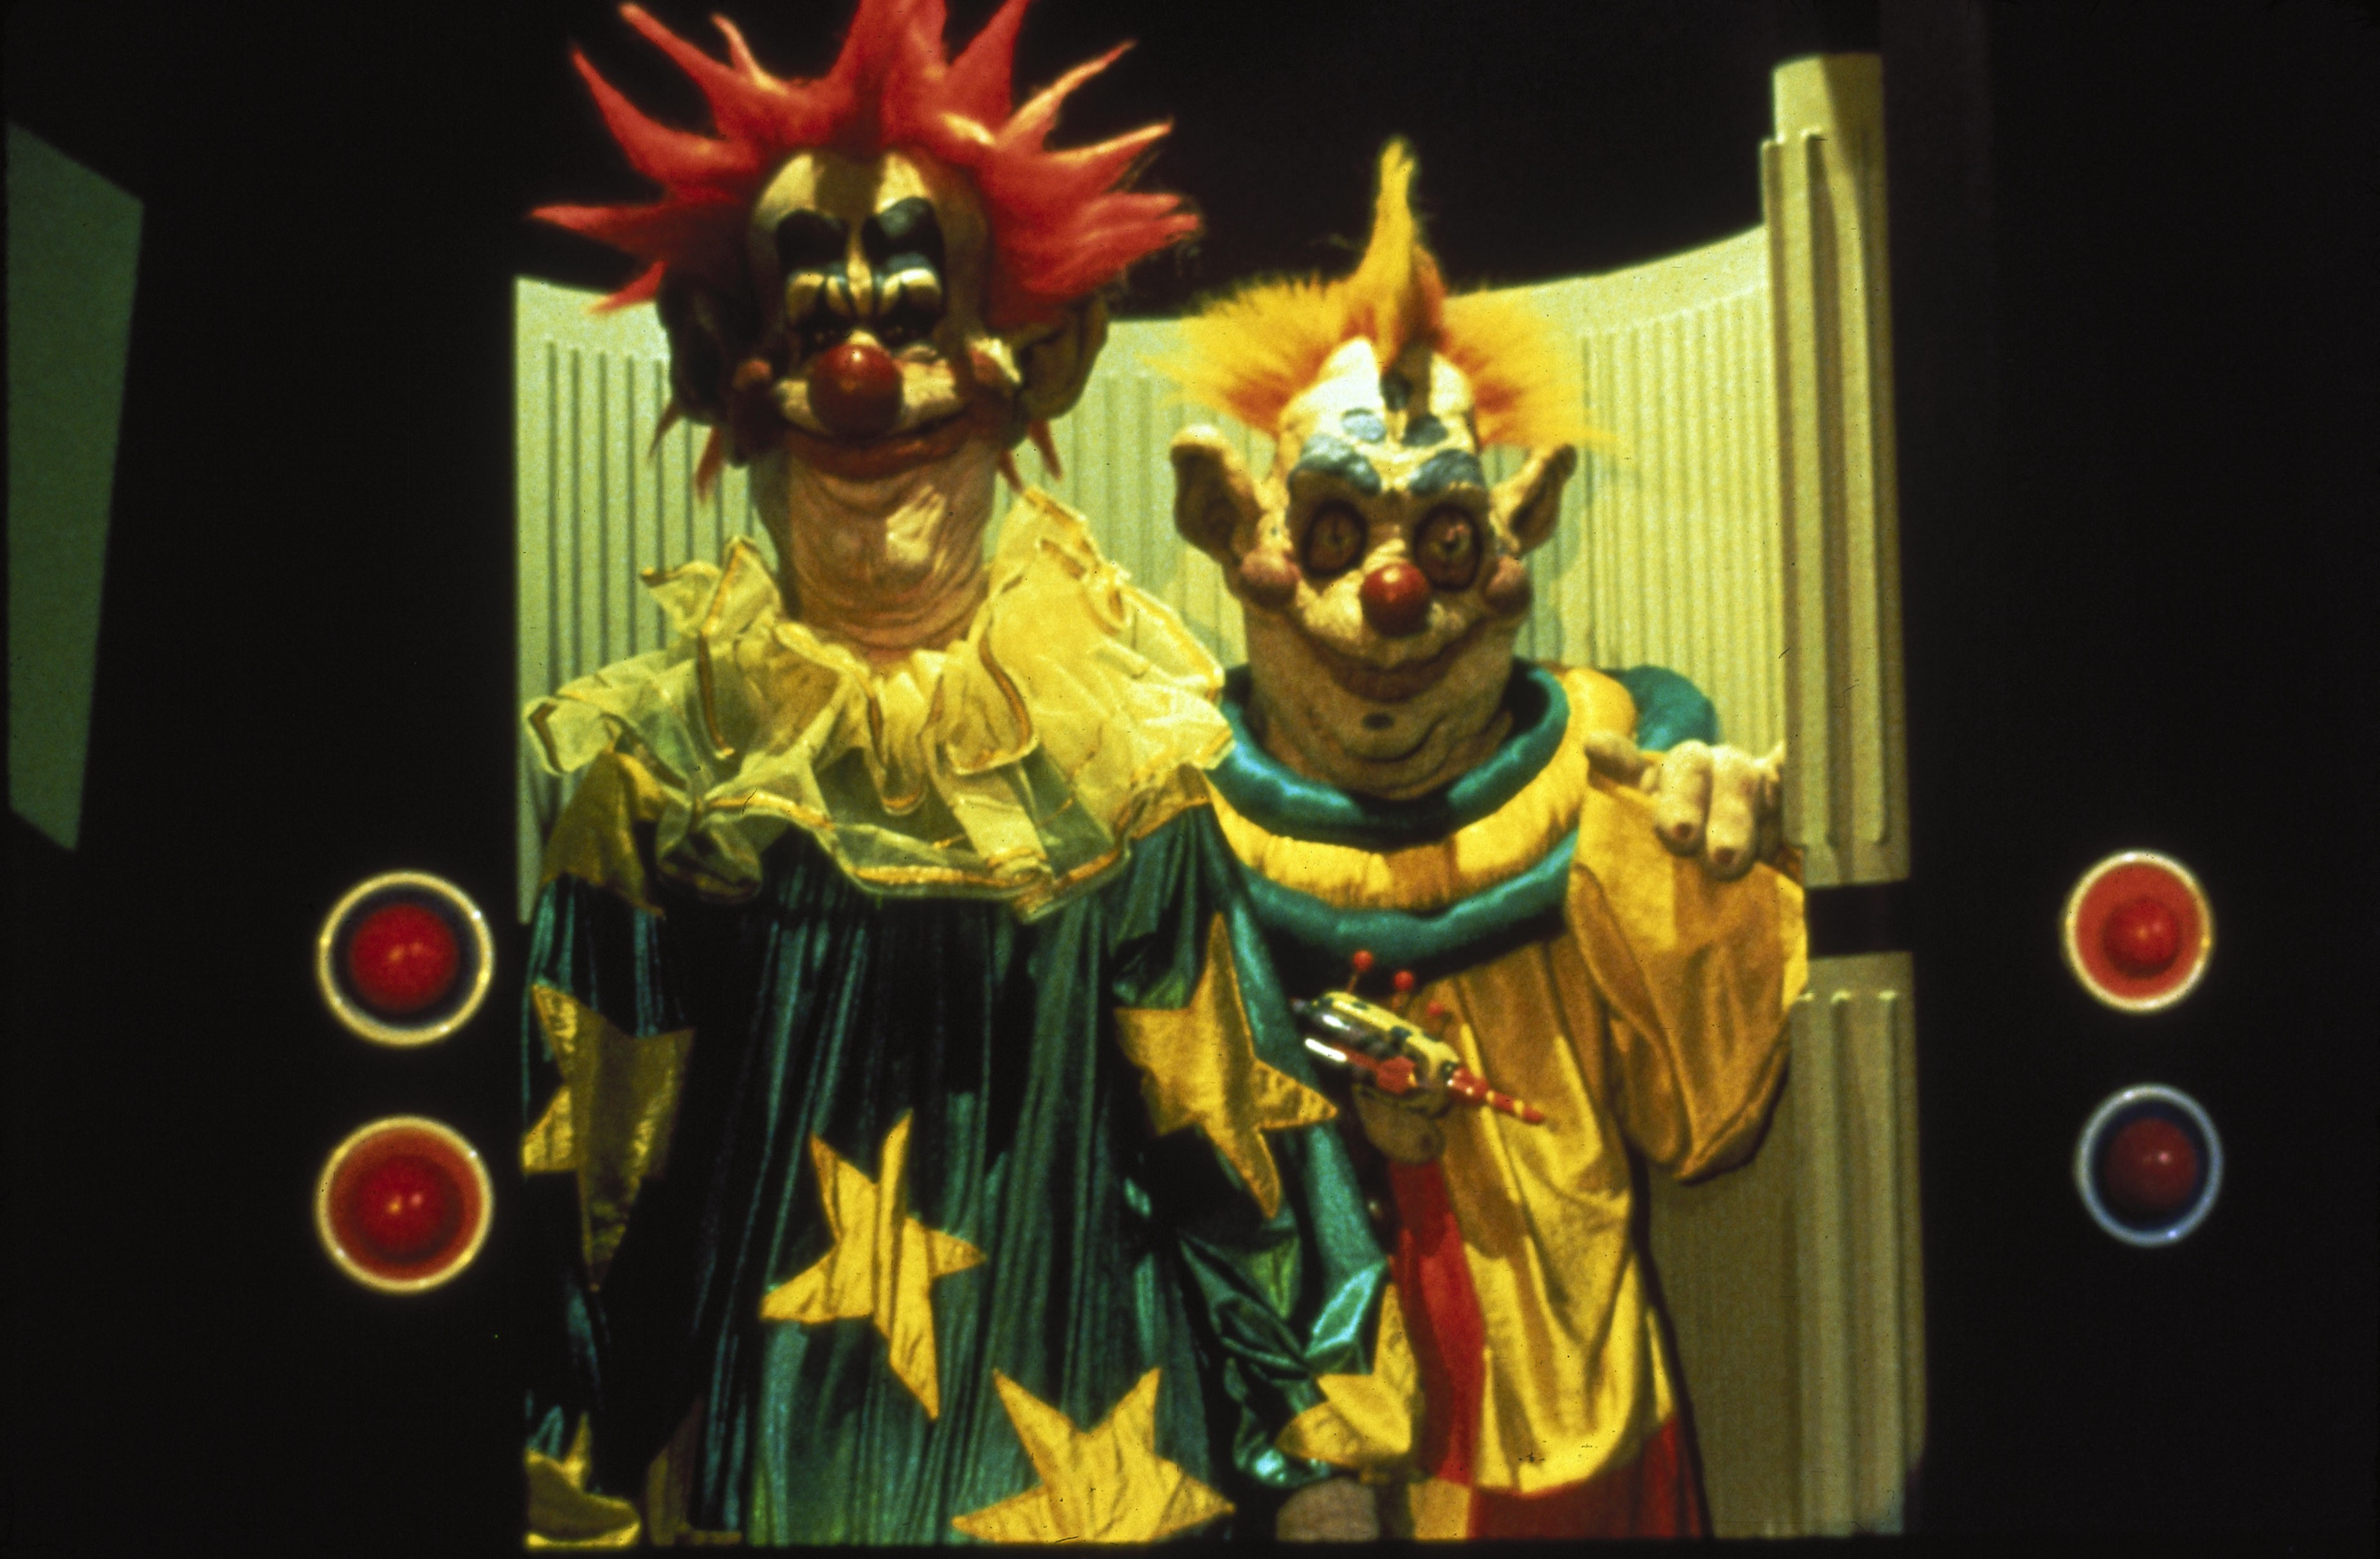 universal announces chucky and killer klowns from outer space